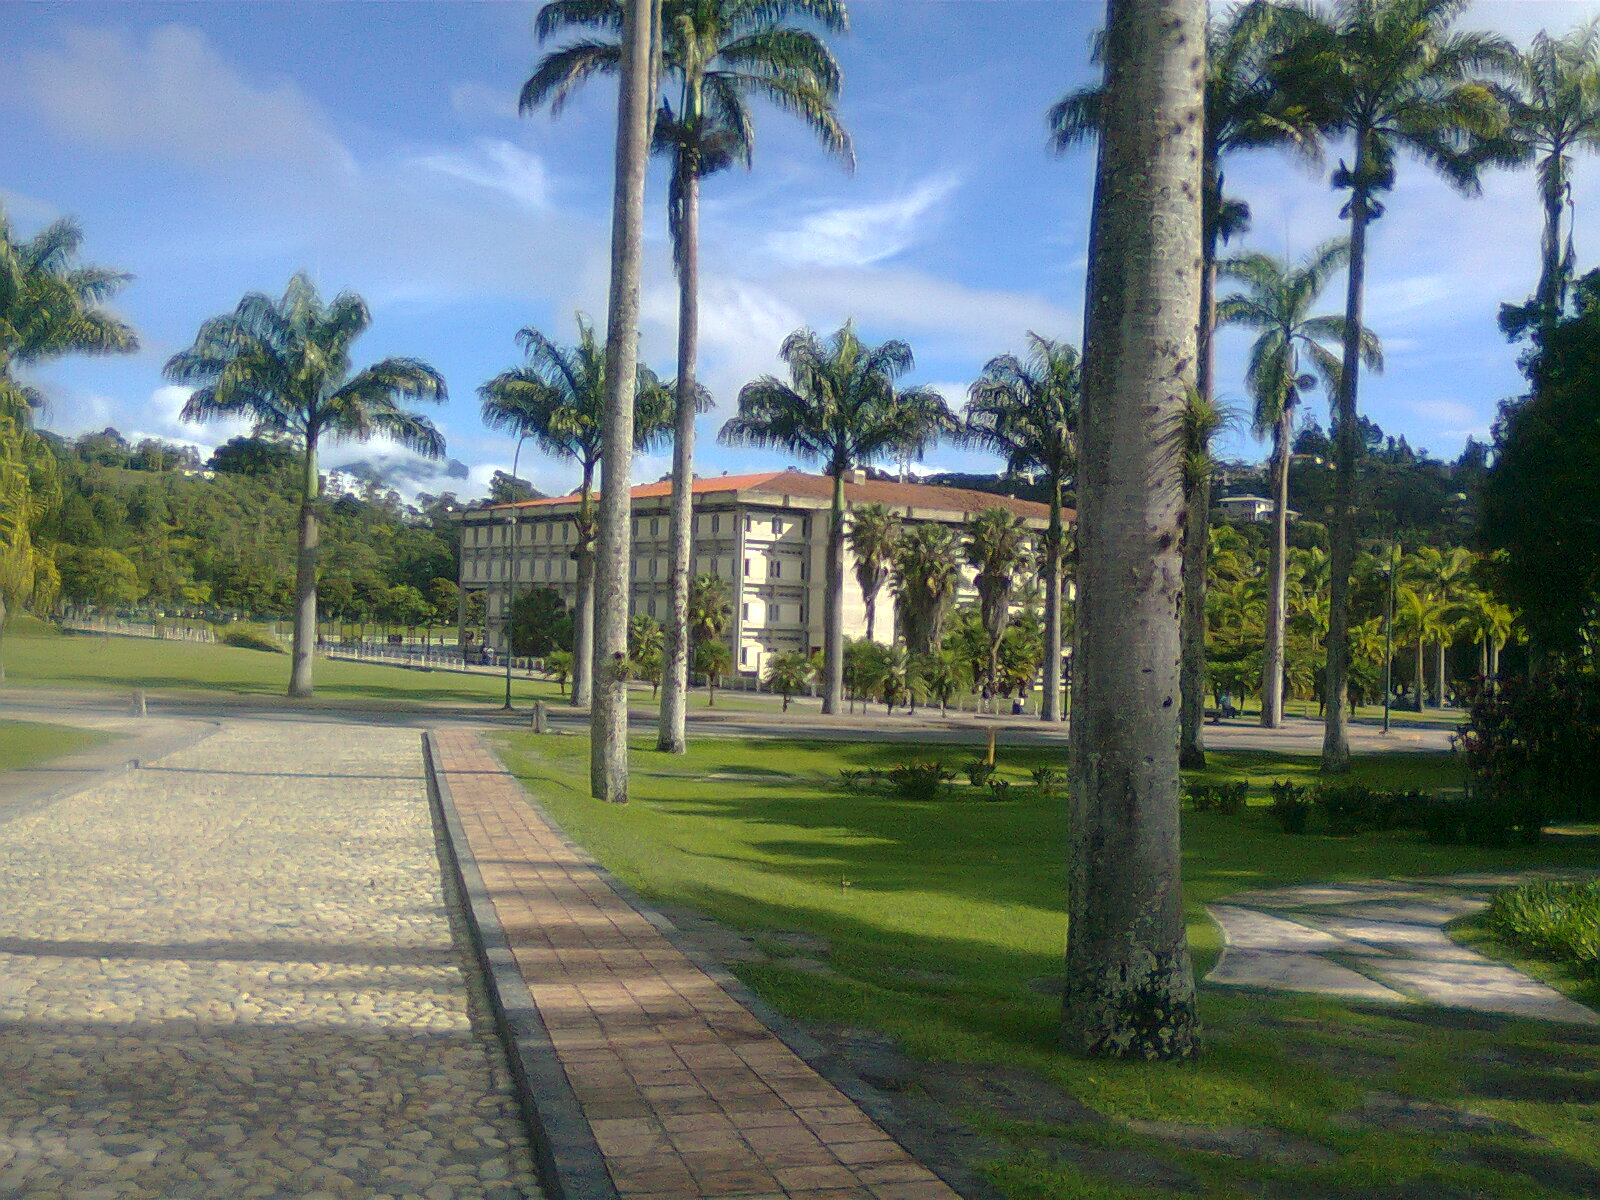 File:Universidad Simon Bolivar- Caracas.jpg - Wikimedia Commons